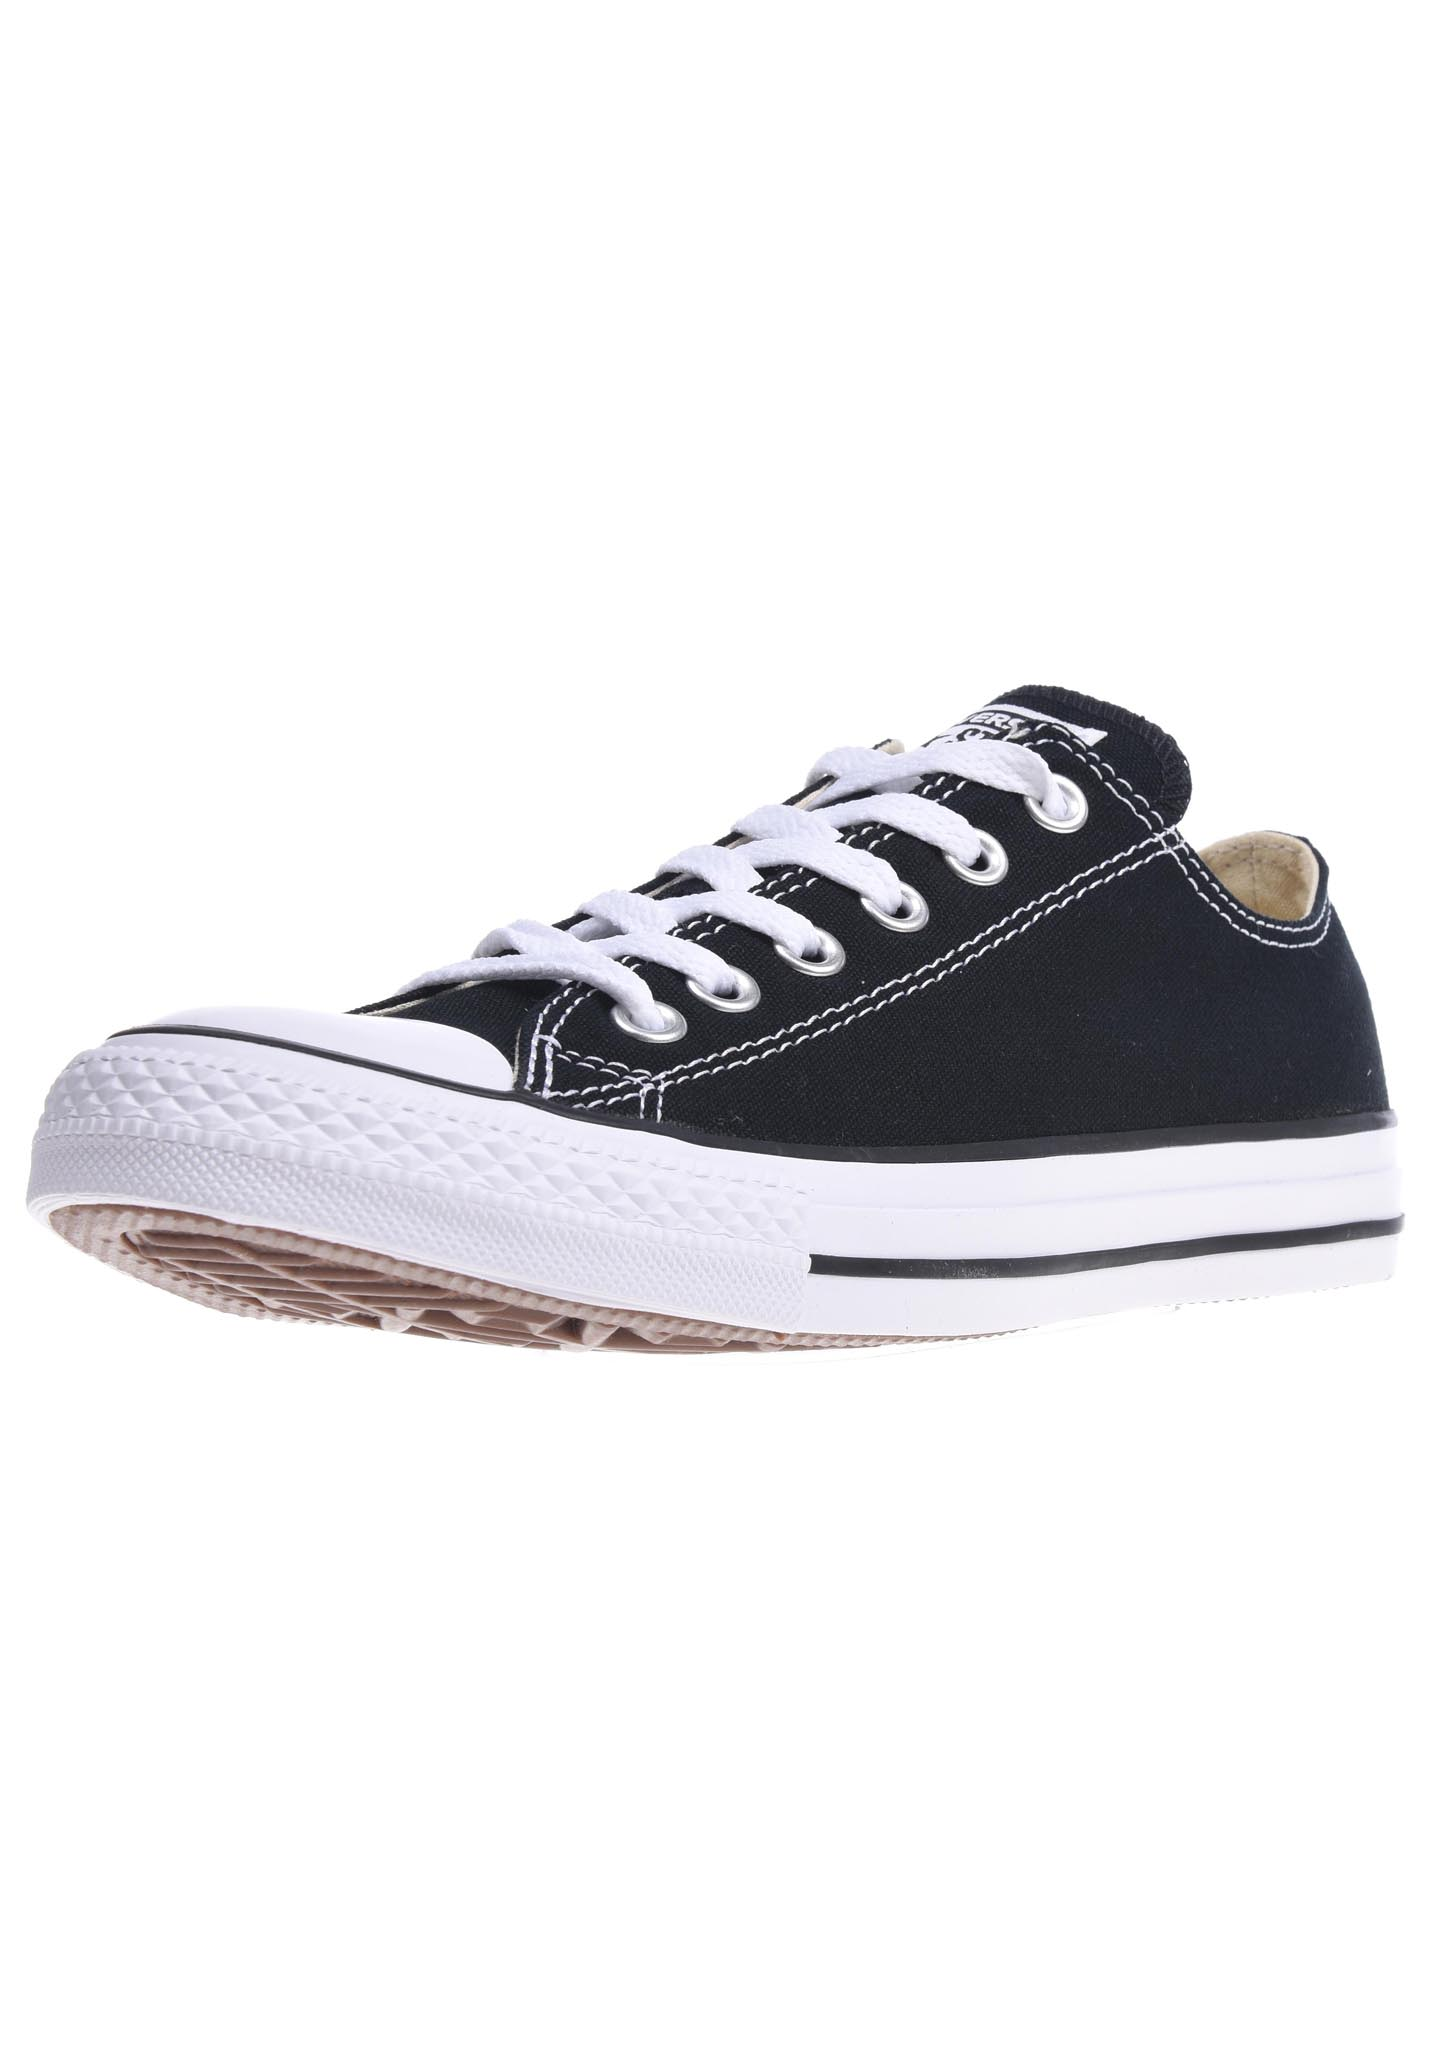 converse all star ox herren damen sneaker turnschuhe. Black Bedroom Furniture Sets. Home Design Ideas